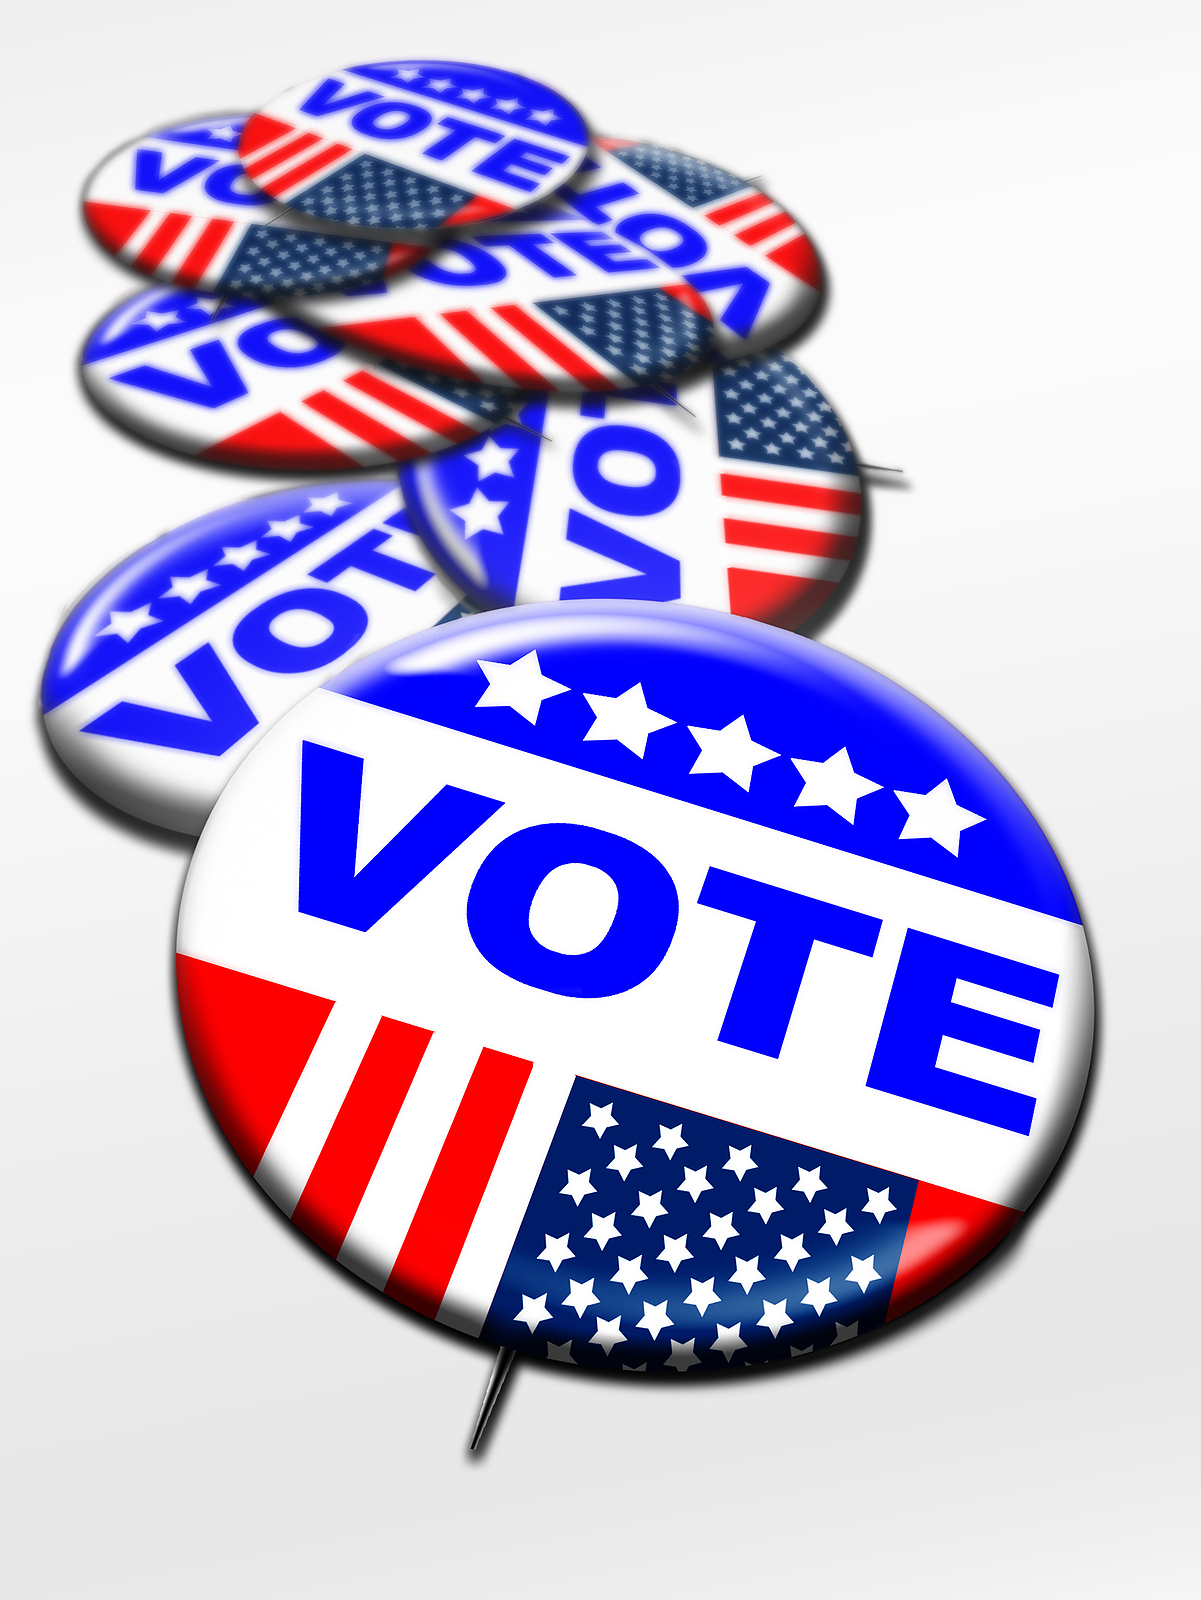 Election_Day_Vote_Buttons_2556658.jpg